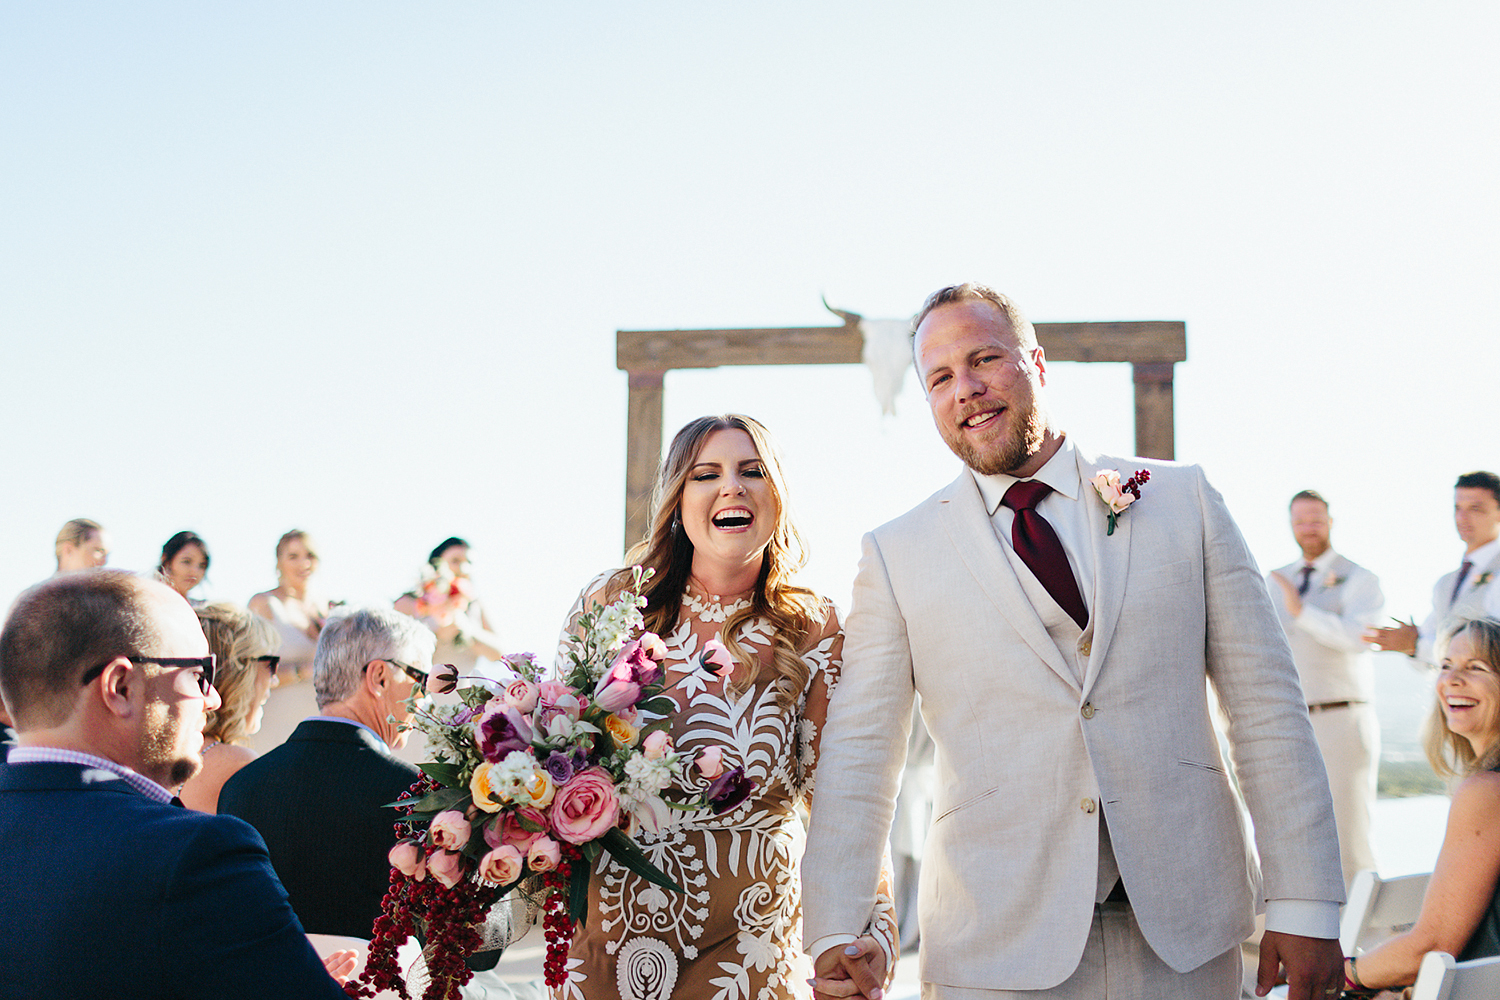 cabo-san-lucas-wedding-travelling-destination-wedding-photographer-toronto-wedding-photographers-3b-photography-hipster-trendy-documentary-style-mexico-wedding-ceremony-bride-and-groom-vows-ocean-view-just-married-celebration-recessional.jpg